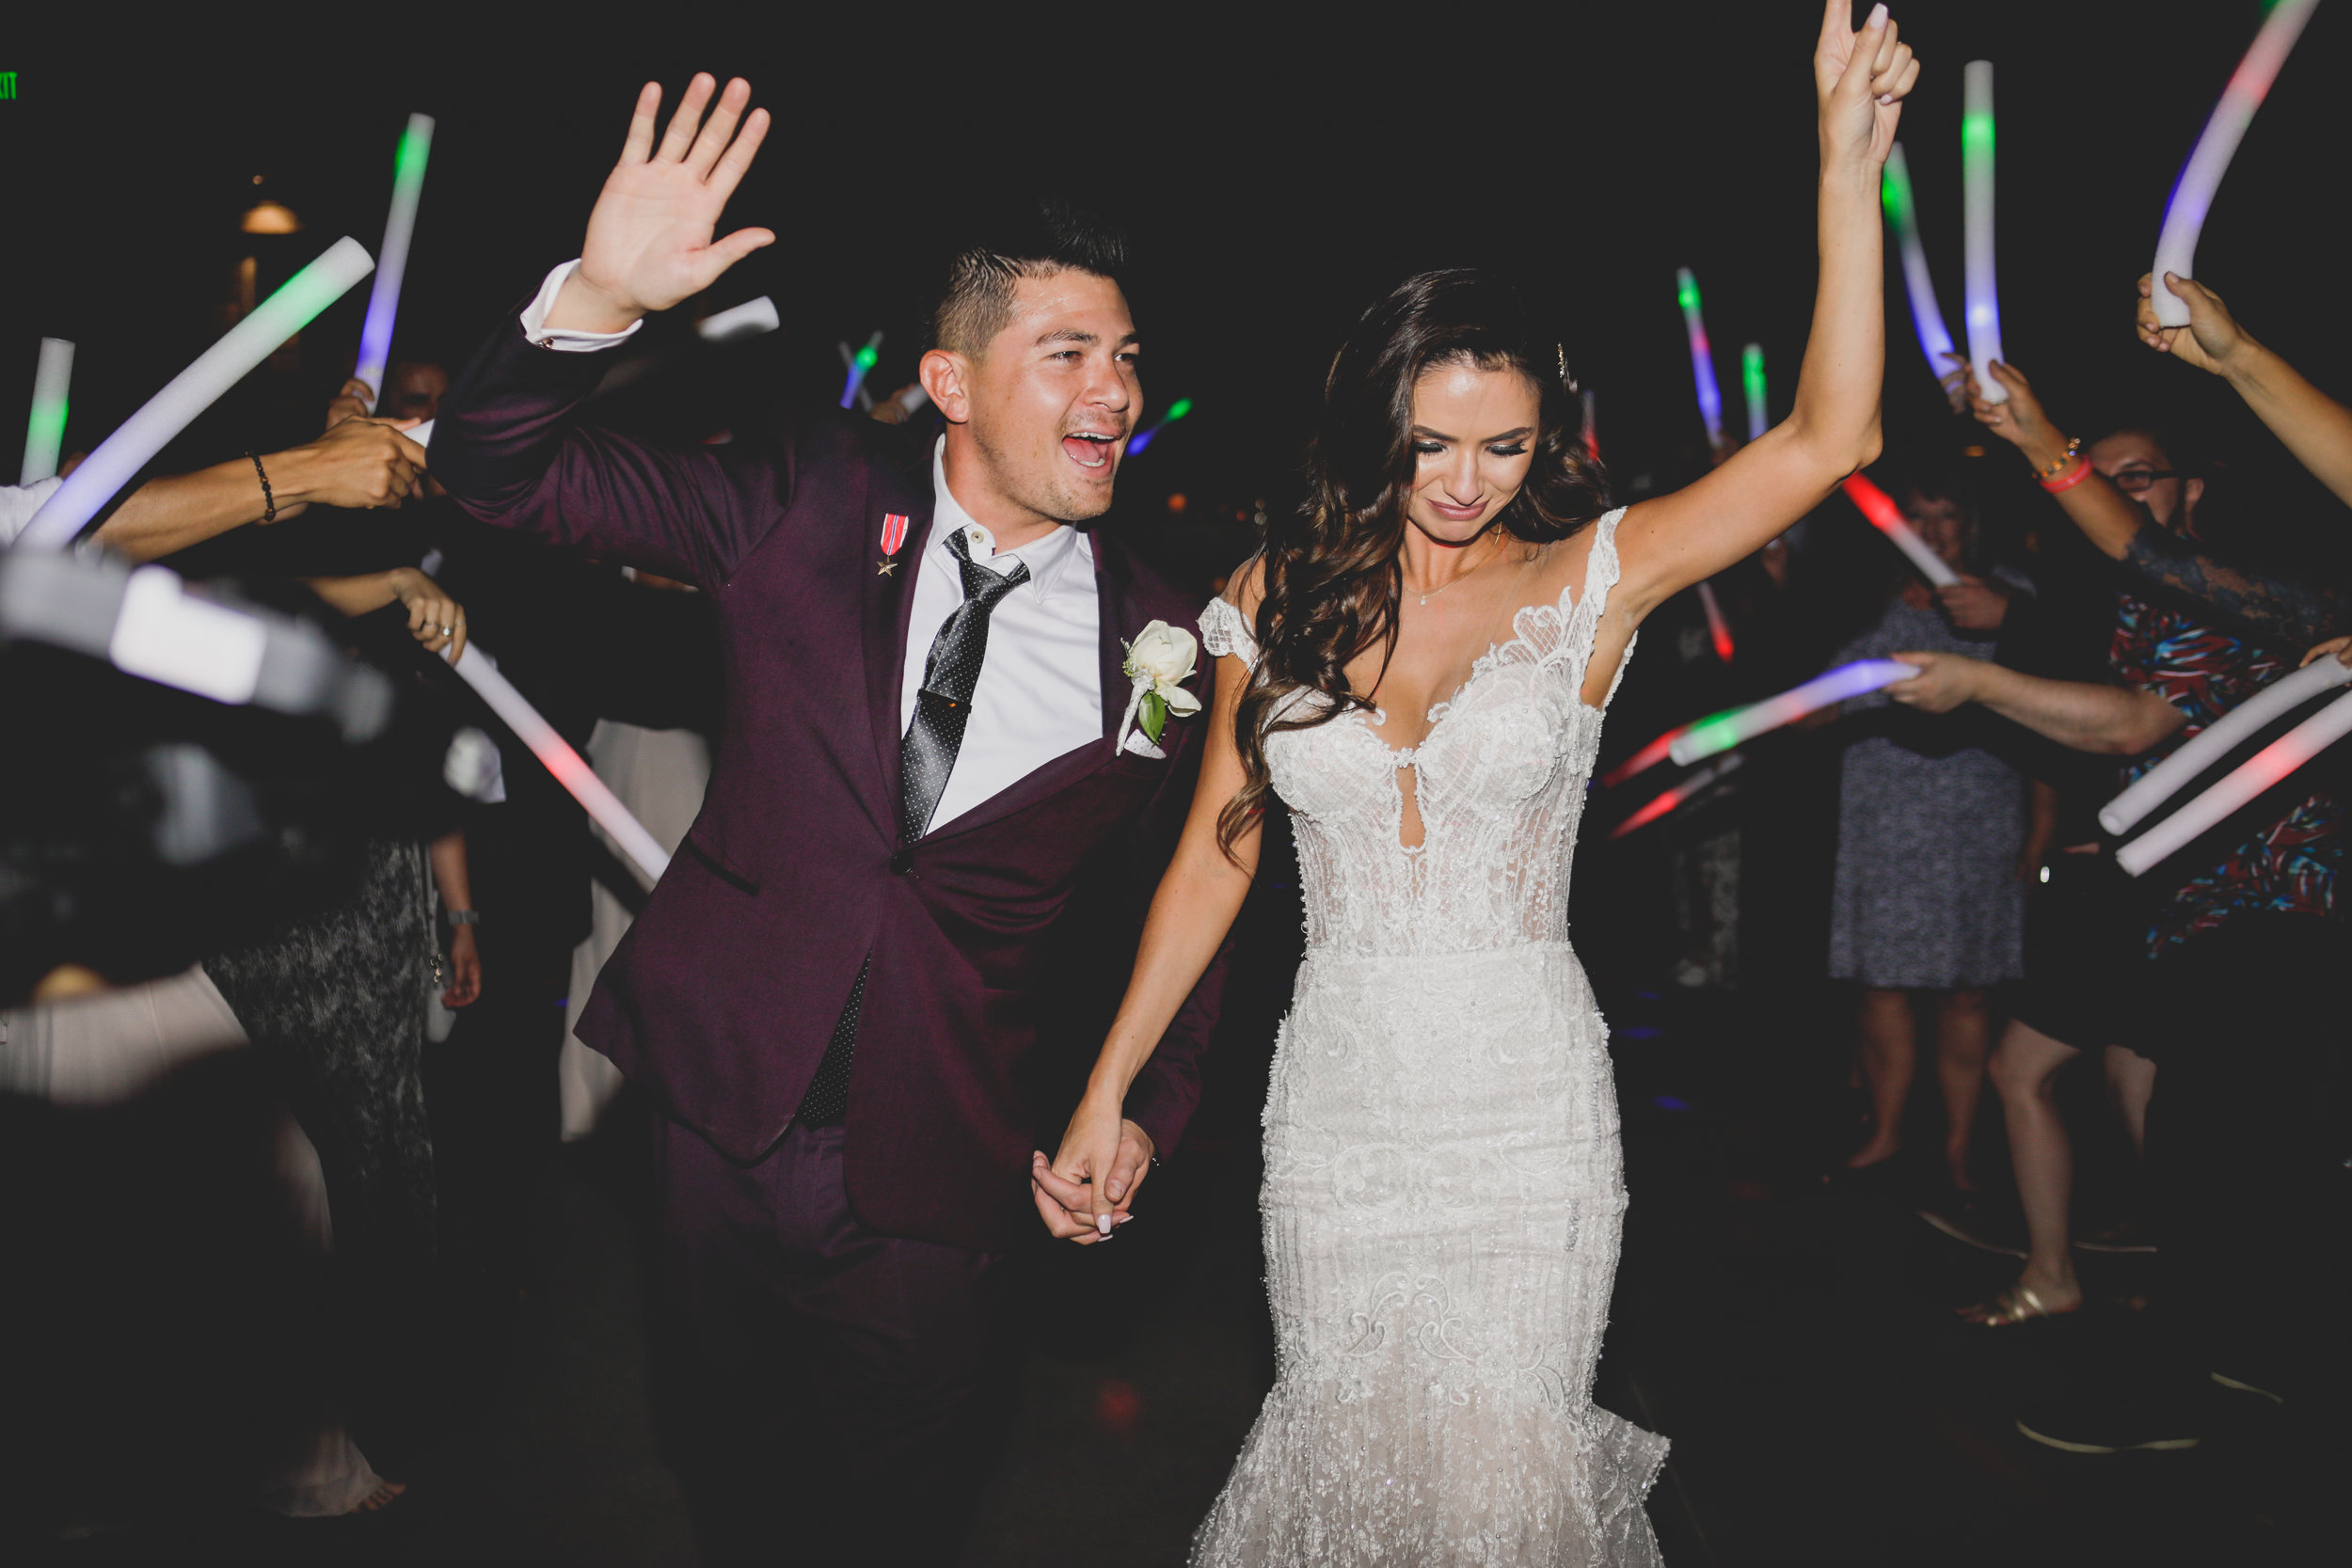 Bride and groom exiting their wedding with raised hands through a sea of glow sticks.